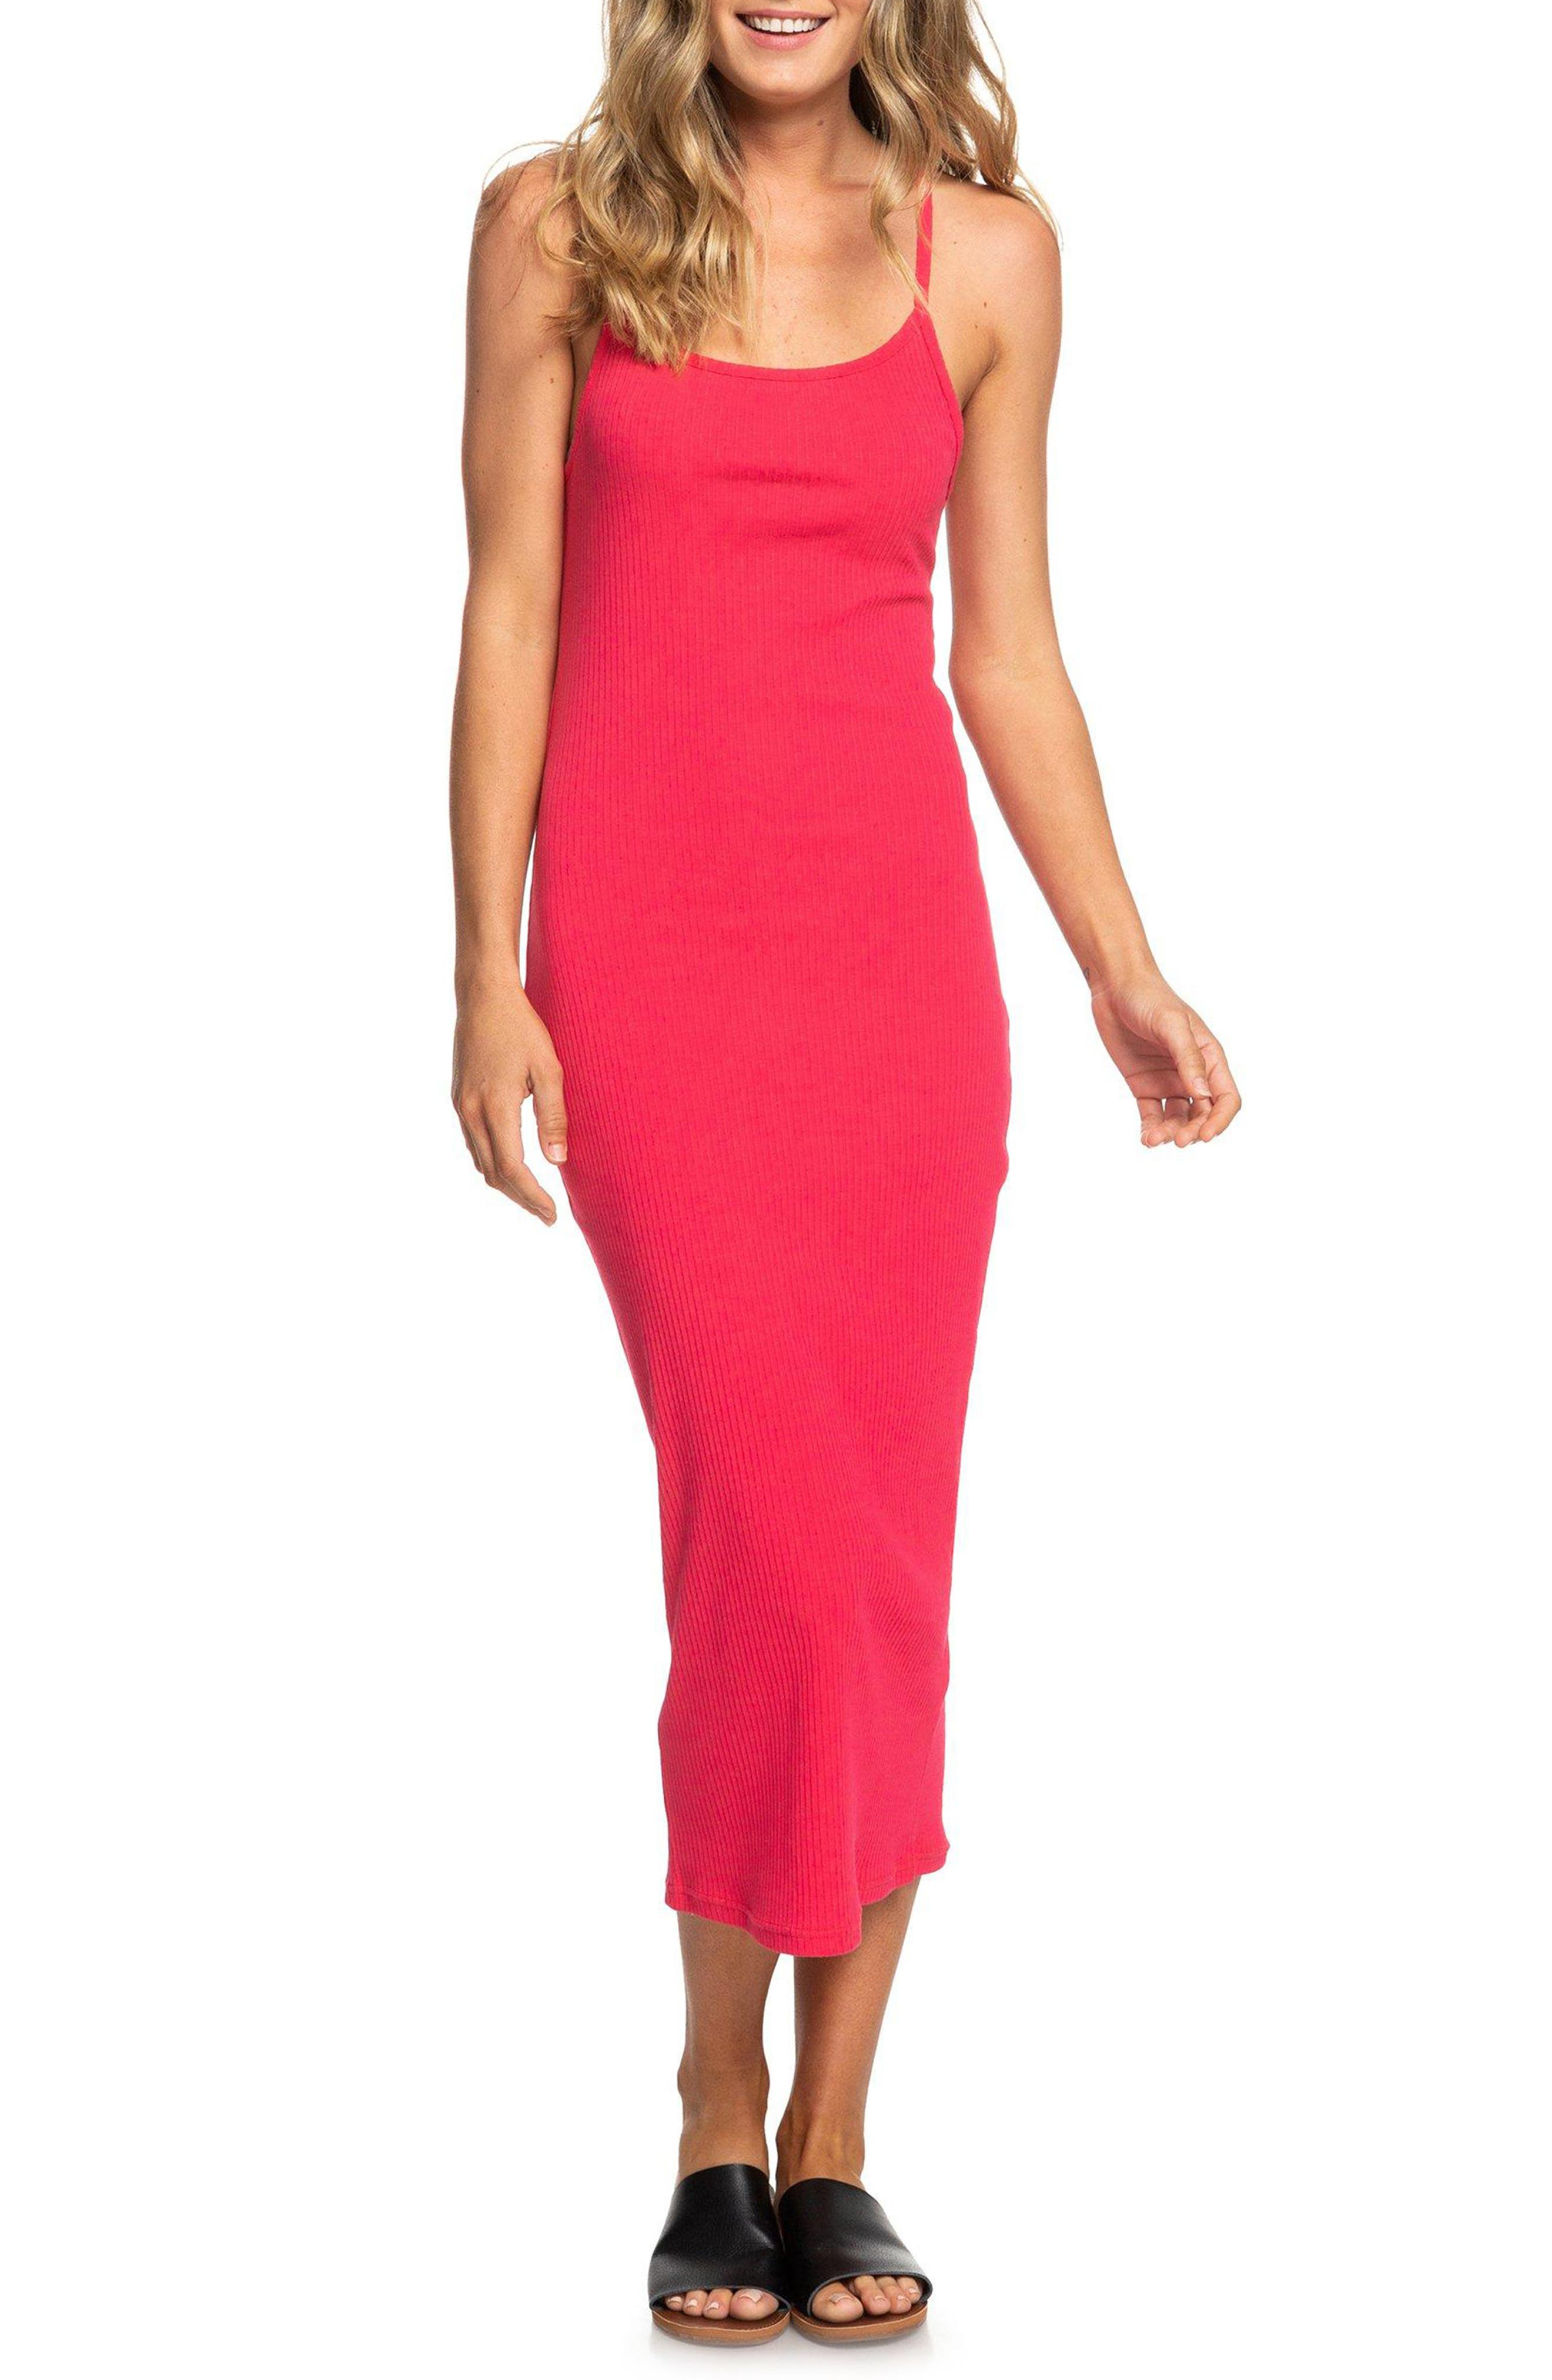 Roxy Likely Me Cutout Ribbed Midi Dress, Pink